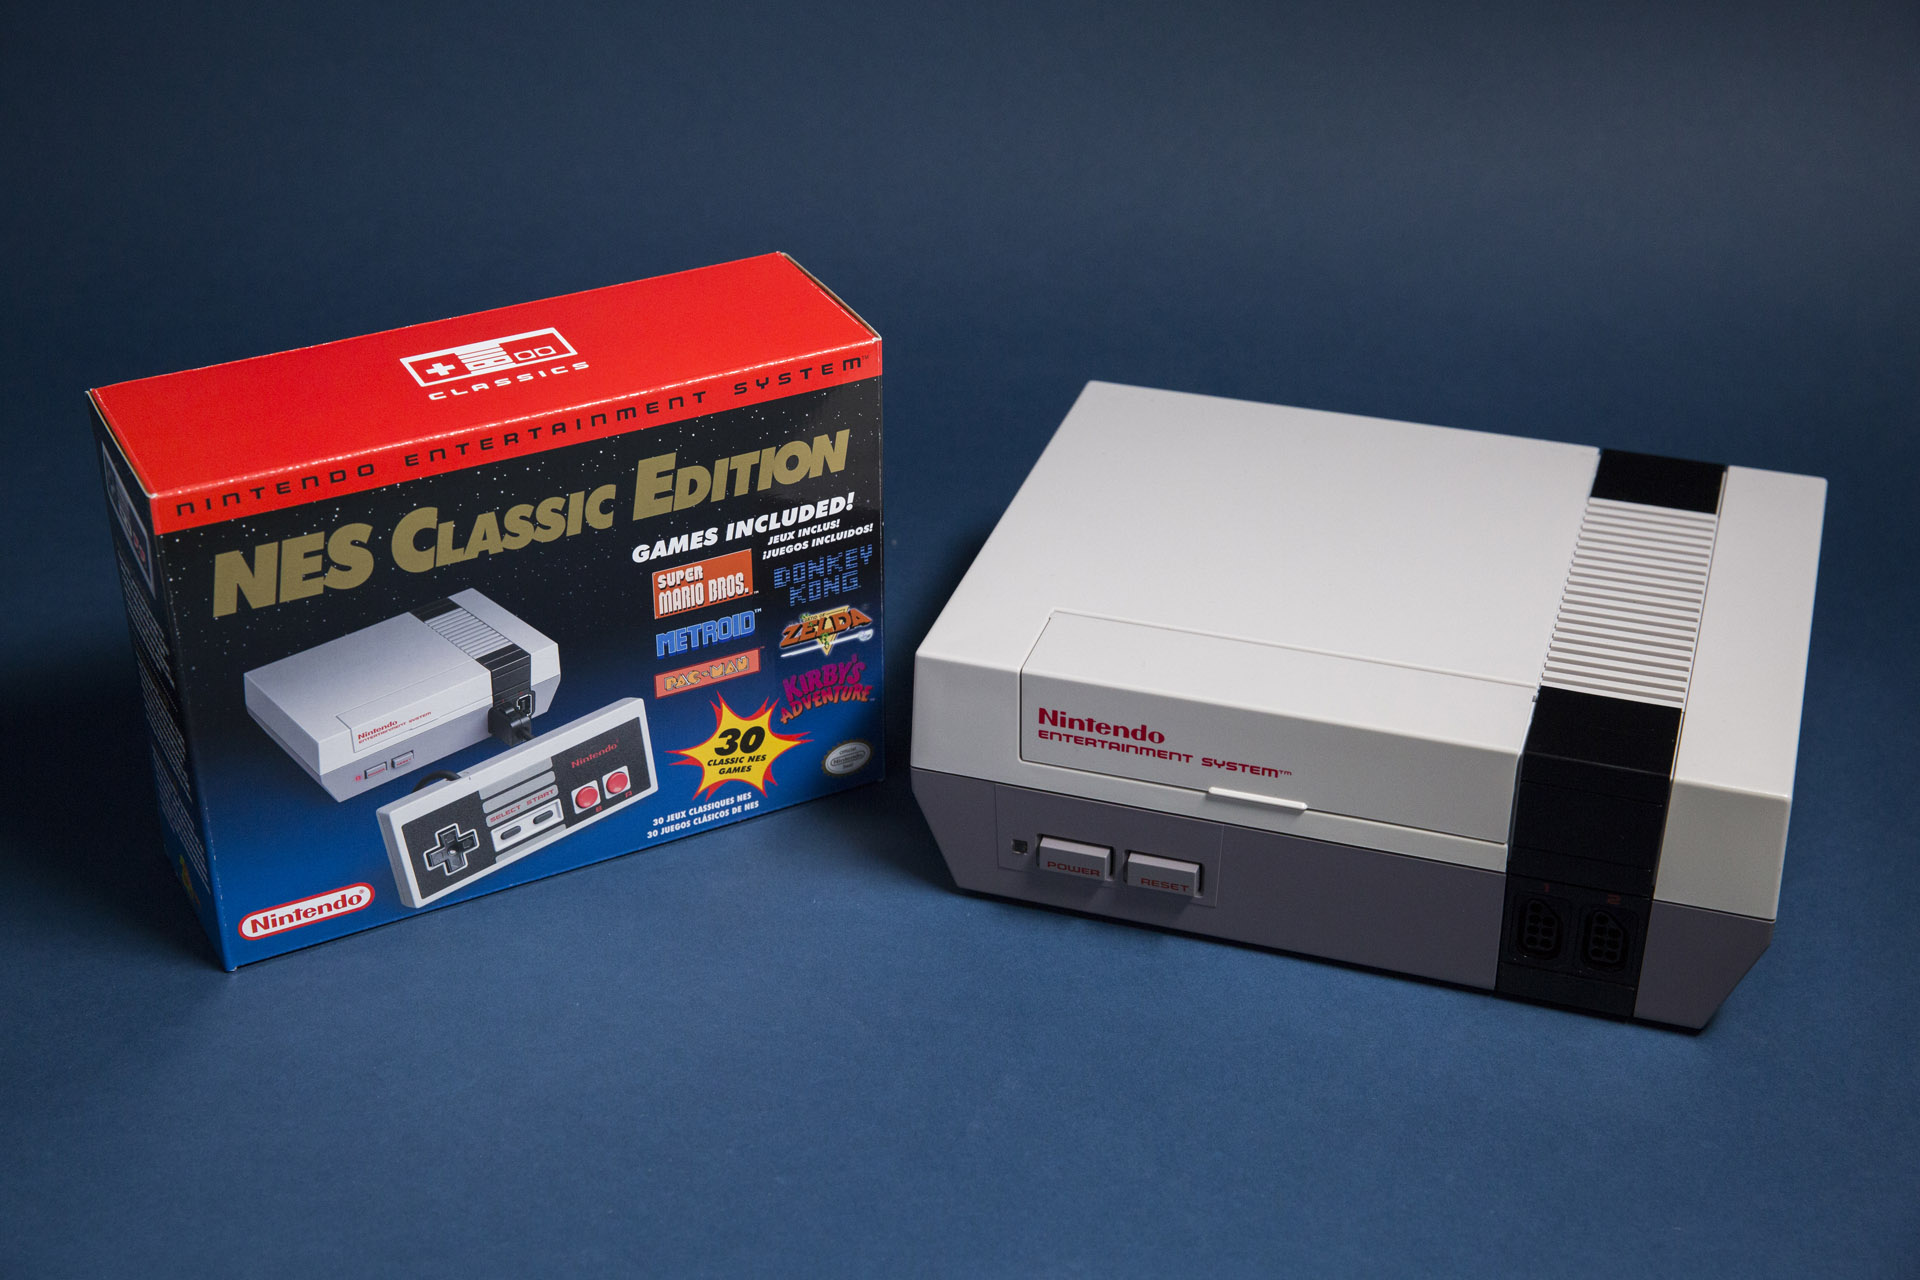 NES Classic Edition in stock at the Nintendo World Store in New York City today